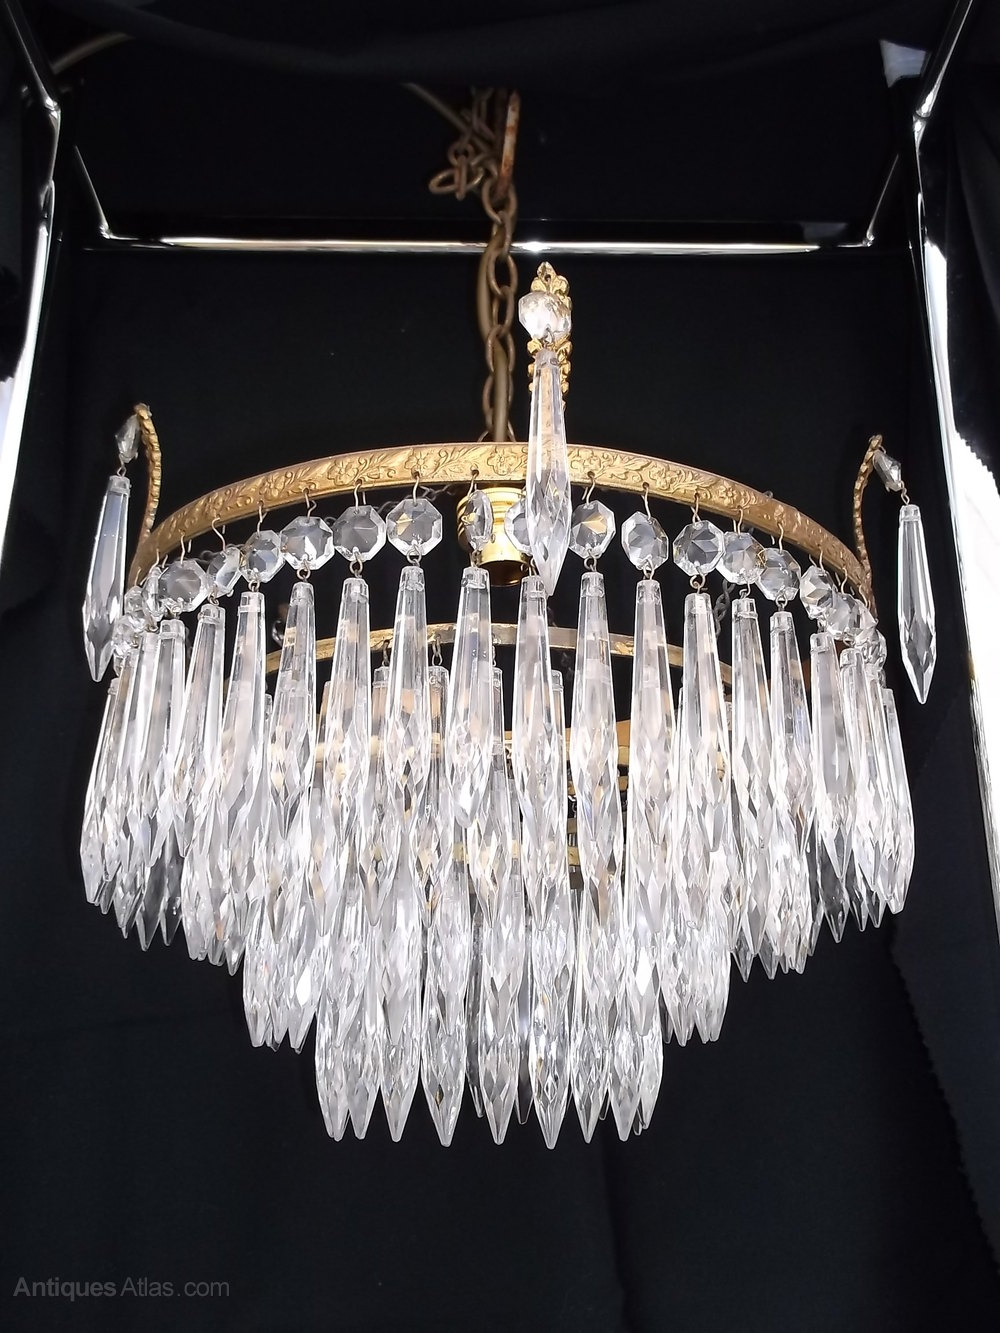 Antiques Atlas Antique 4 Tier Waterfall Crystal Chandelier Intended For Waterfall Chandeliers (Image 7 of 25)